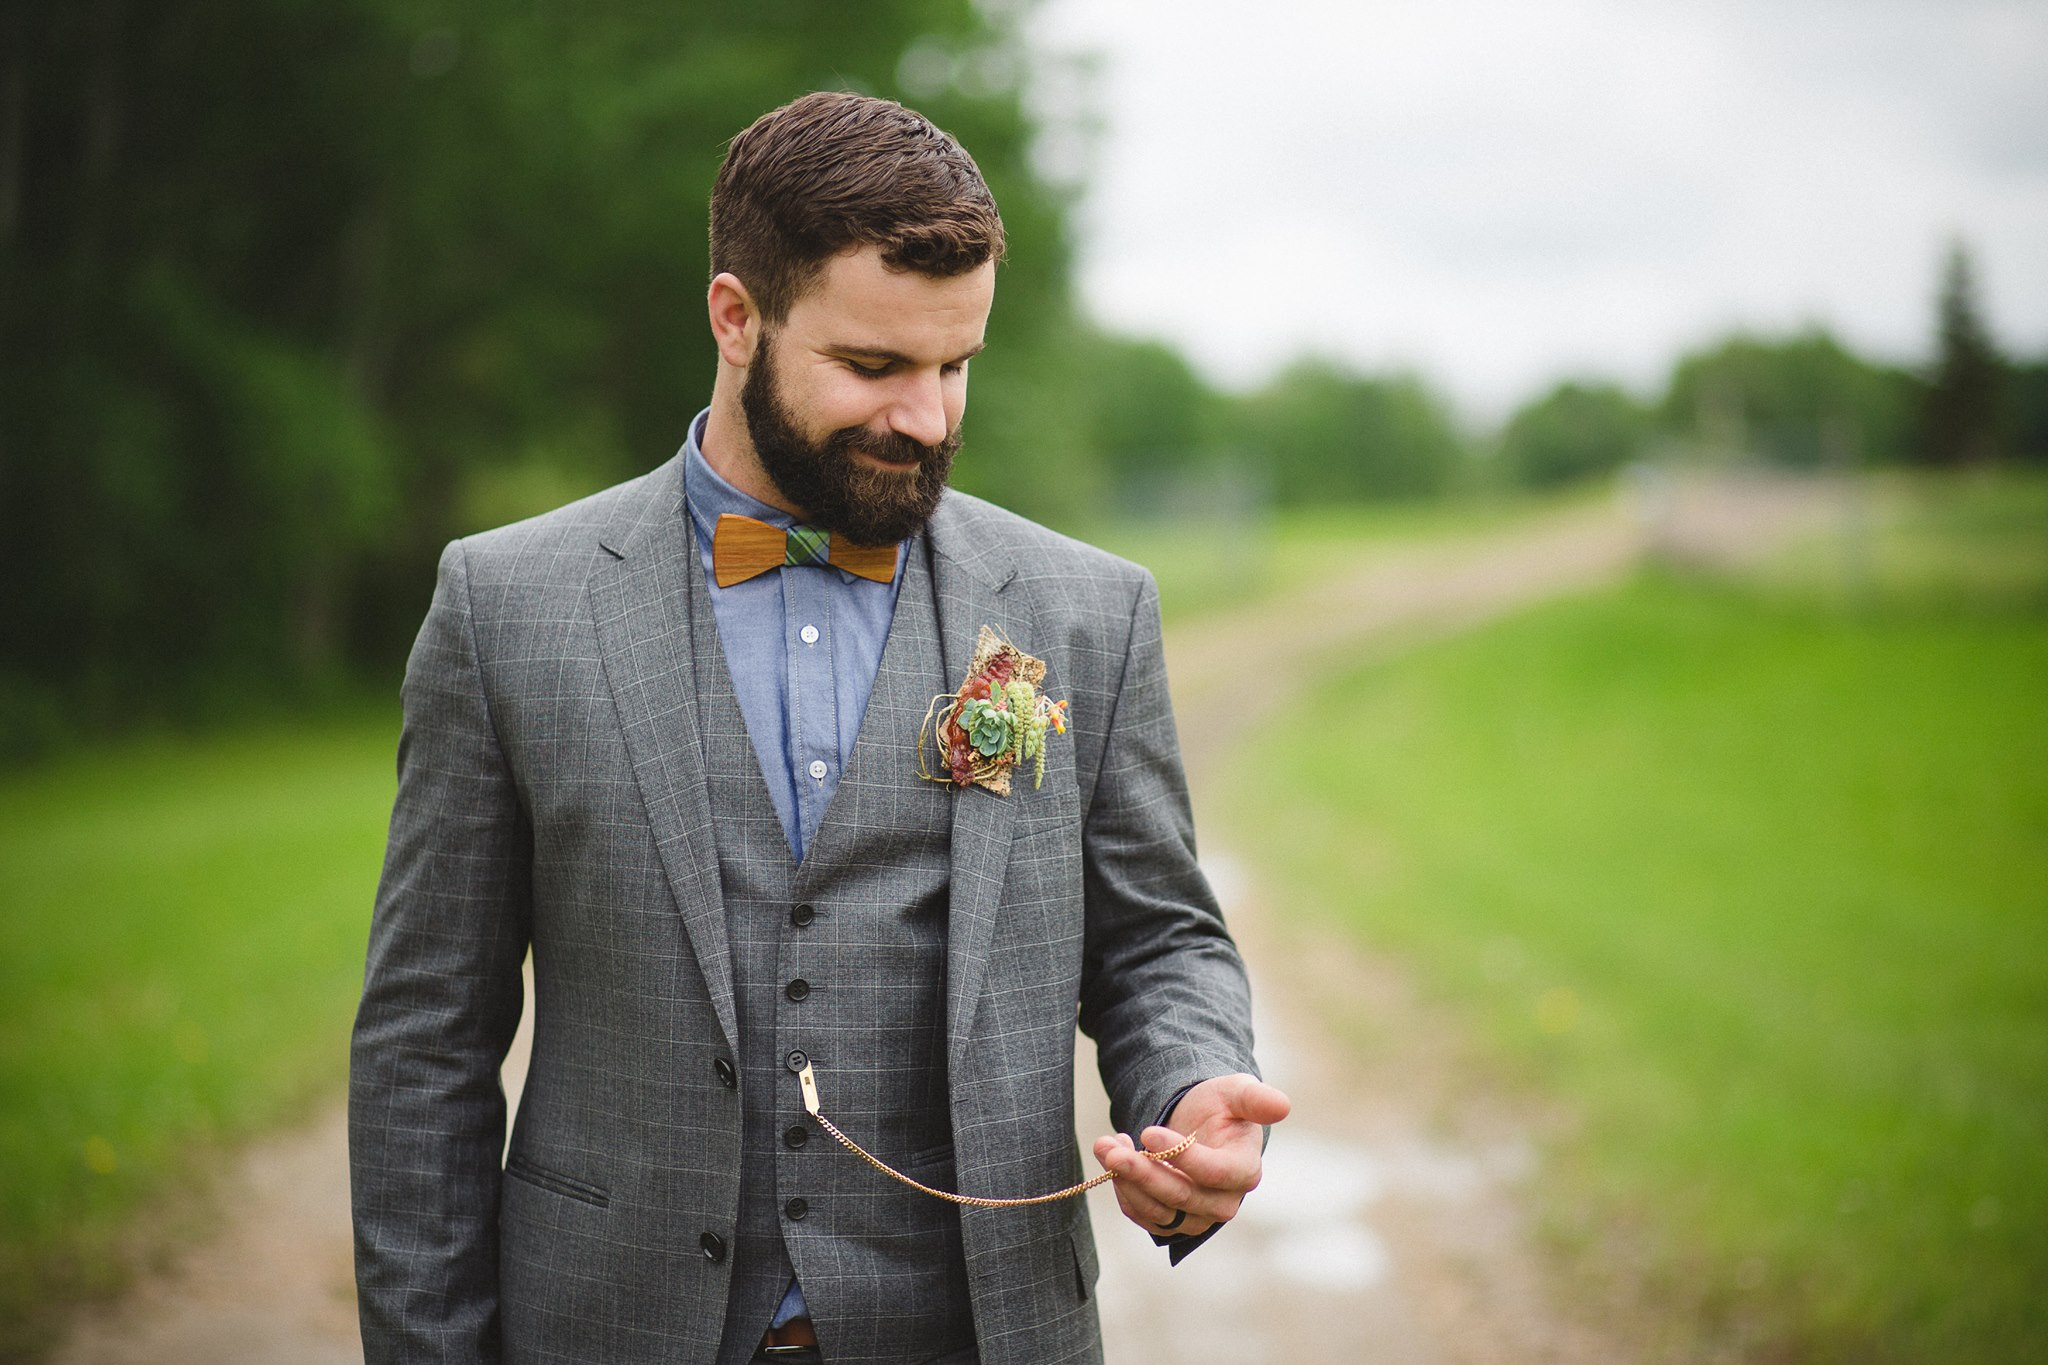 5 Ways to Incorporate Your Unique Style in Your Wedding - Two Guys ...